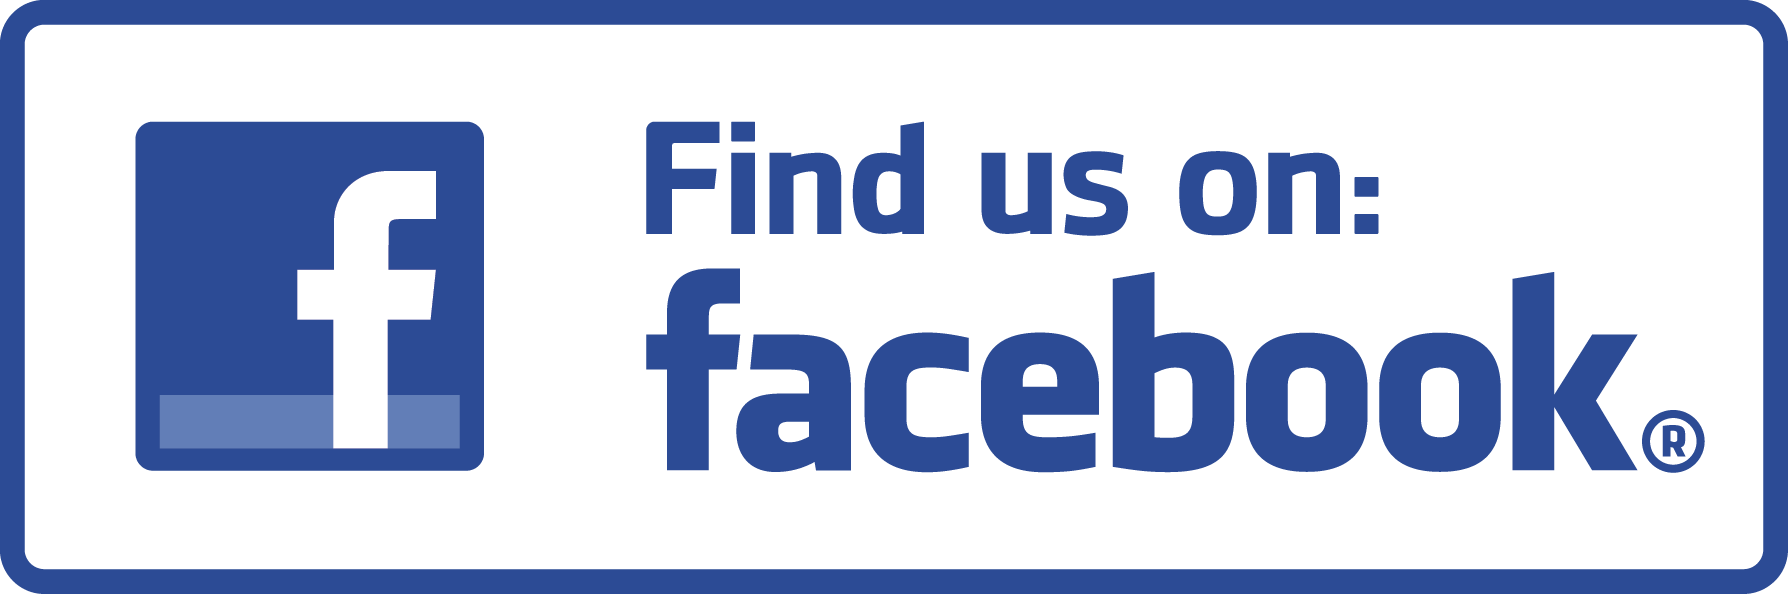 Facebook Logo Wallpaper Full HD